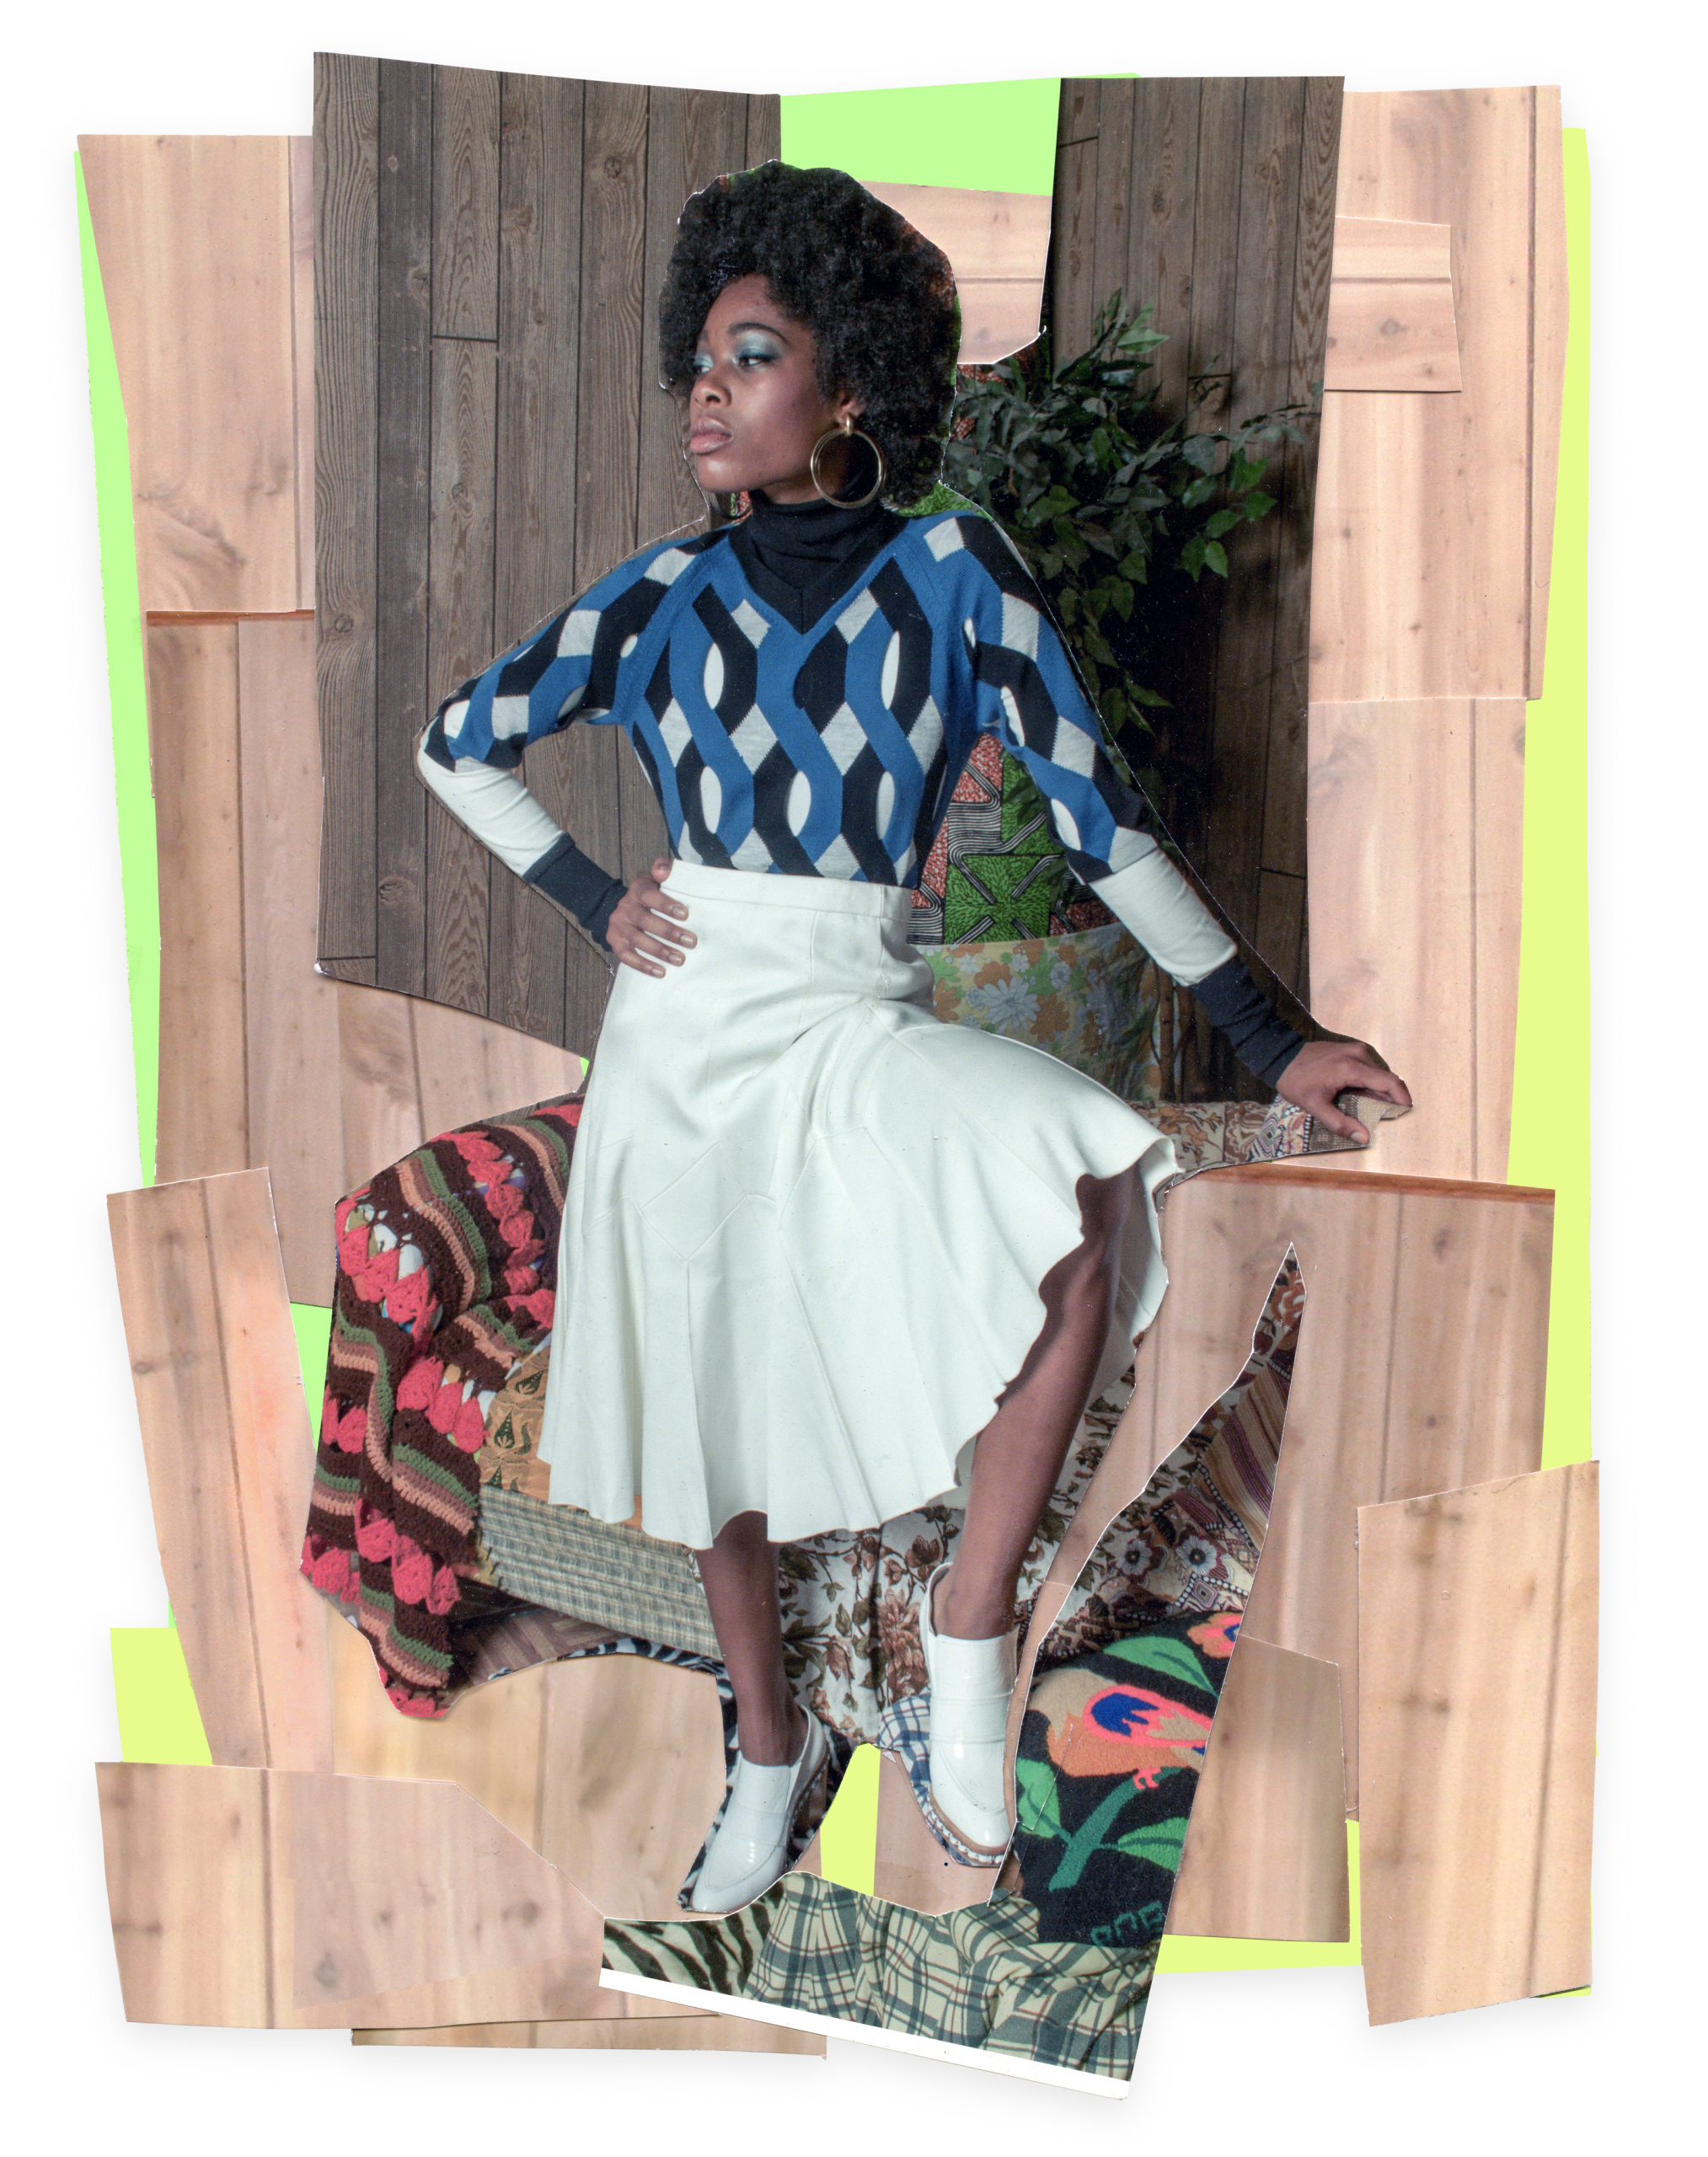 """Mickalene Thomas, Liz with White Skirt and White Shoes, 2015. Colour photograph and paper collage on archival board, original artwork dimensions 11.25 x 8.5"""". © Mickalene Thomas / SODRAC (2016). Courtesy of the artist and Artists Rights Society (ARS), New York"""